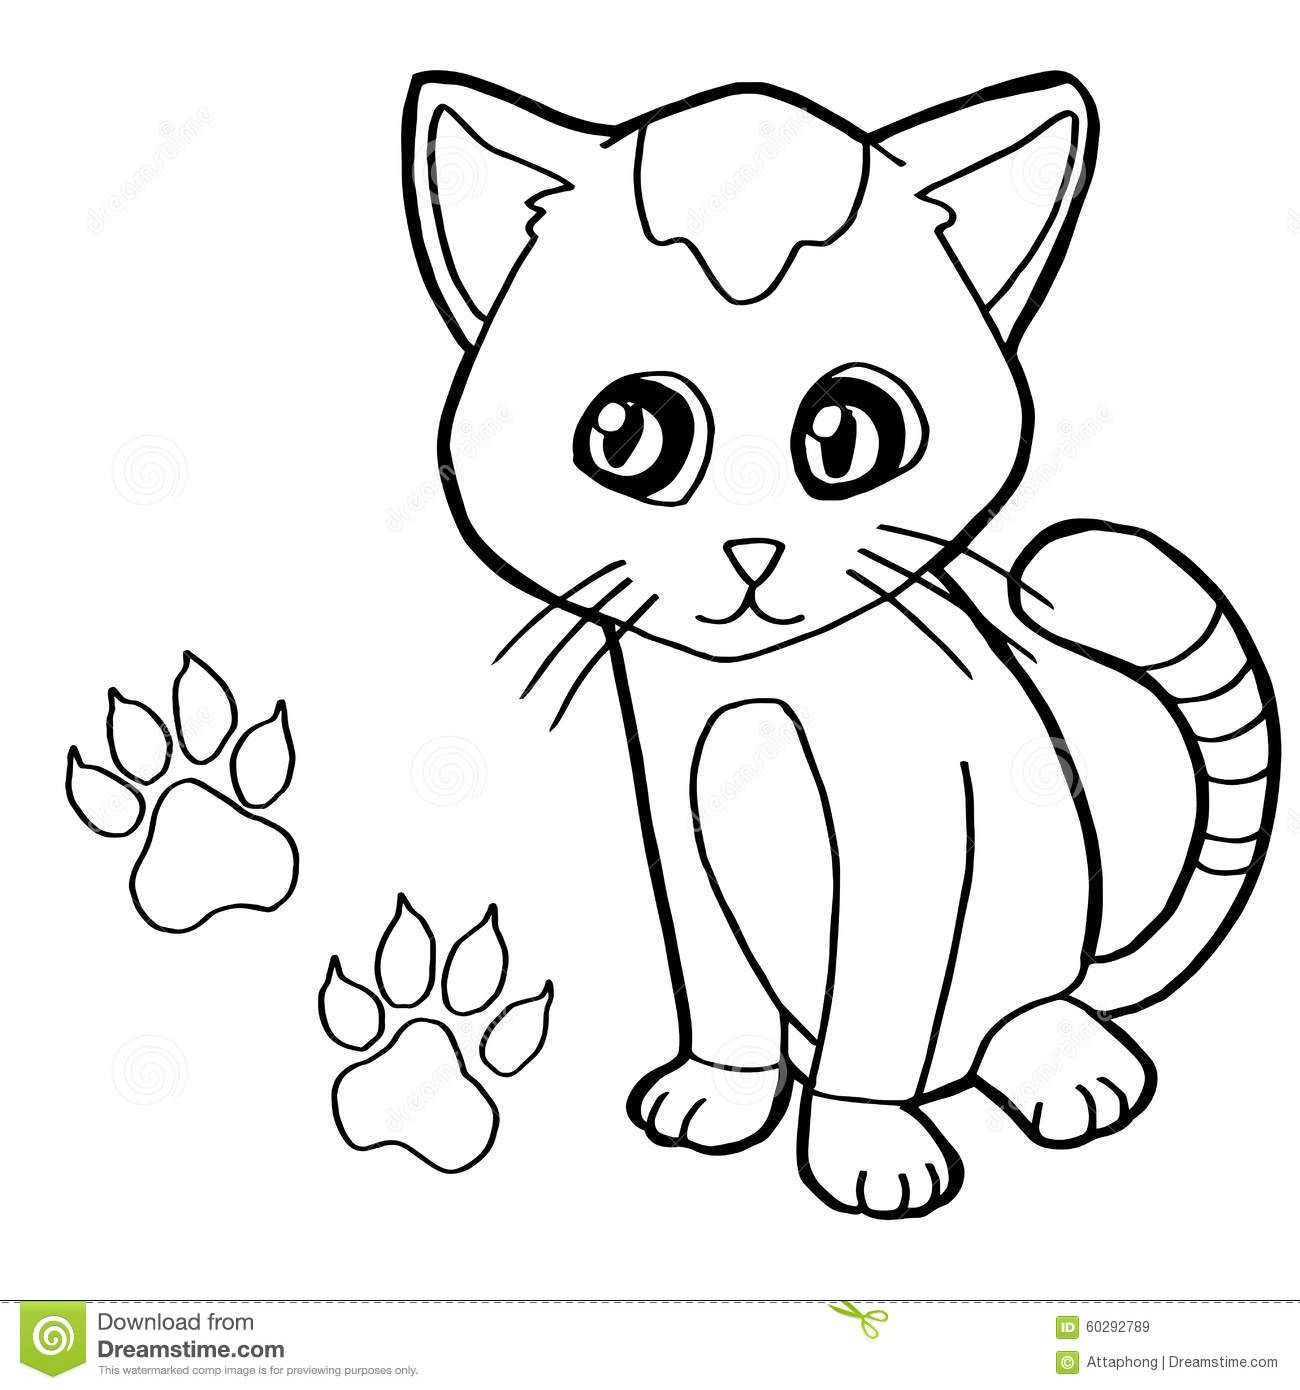 Paw Print Cat Coloring Page Vector Image Pages 60292789 Jpg 1300 1390 Cute Coloring Pages Butterfly Coloring Page Animal Coloring Pages